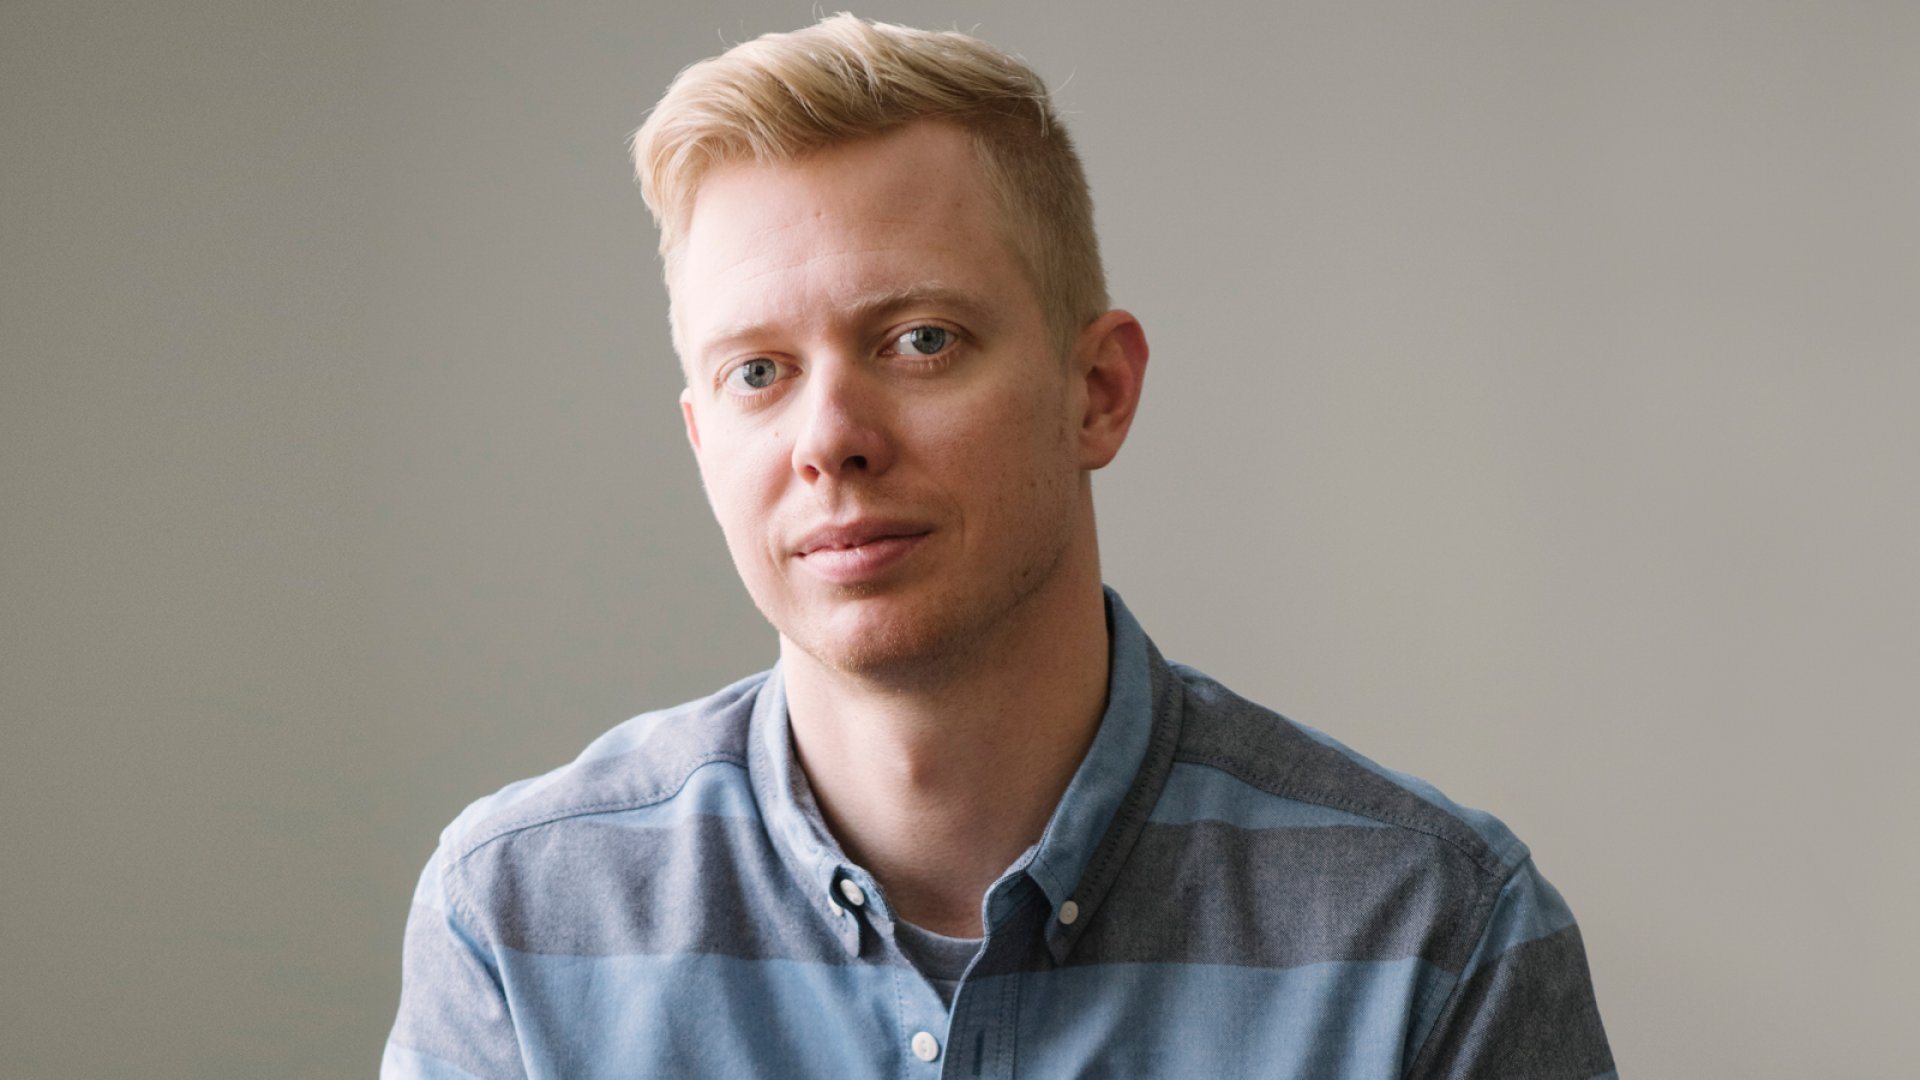 Steve Huffman co-founded Reddit along with his college buddy, Alexis Ohanian, in 2005. In July 2015, he returned to the company as chief executive.